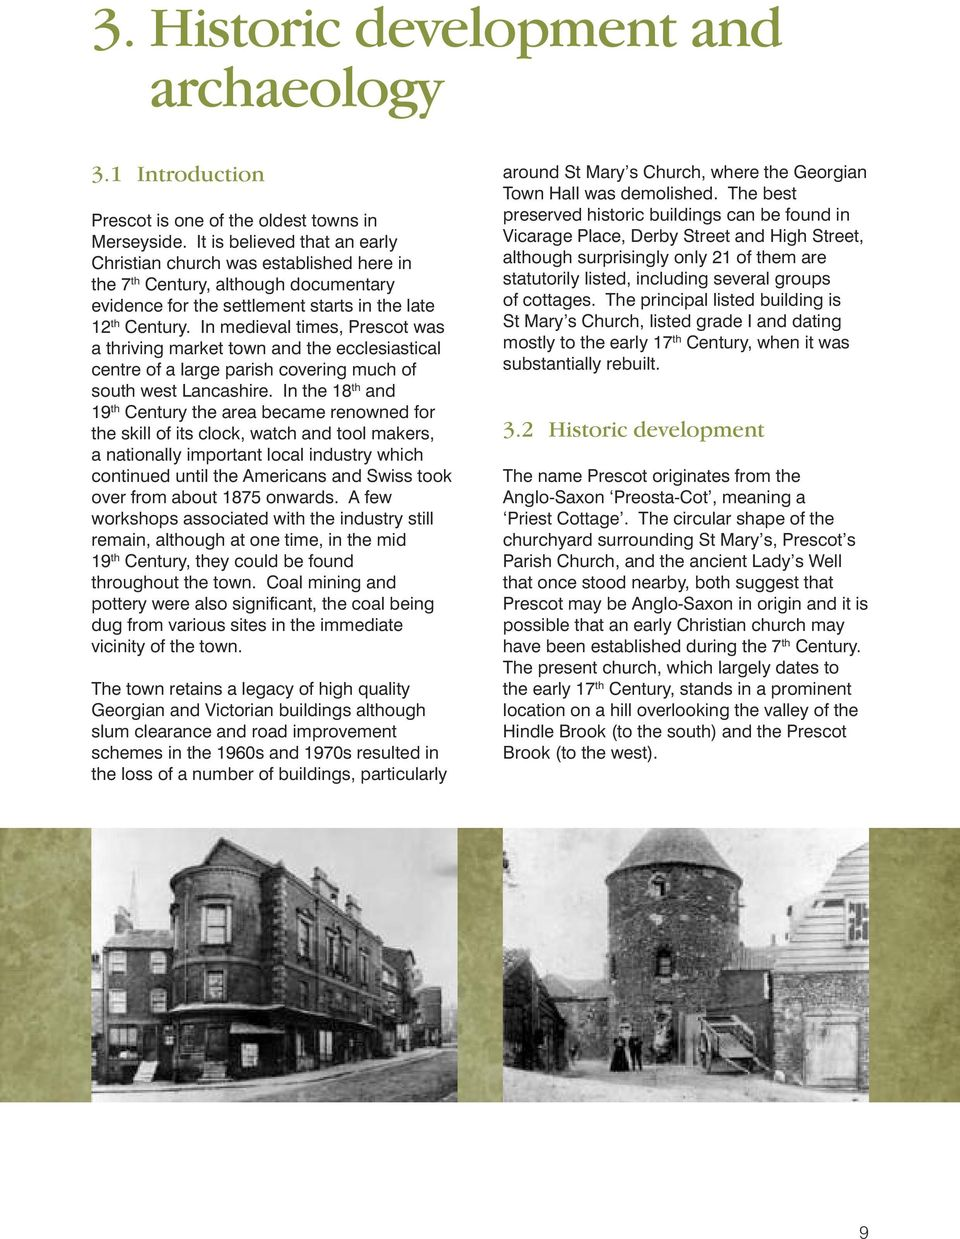 In medieval times, Prescot was a thriving market town and the ecclesiastical centre of a large parish covering much of south west Lancashire.